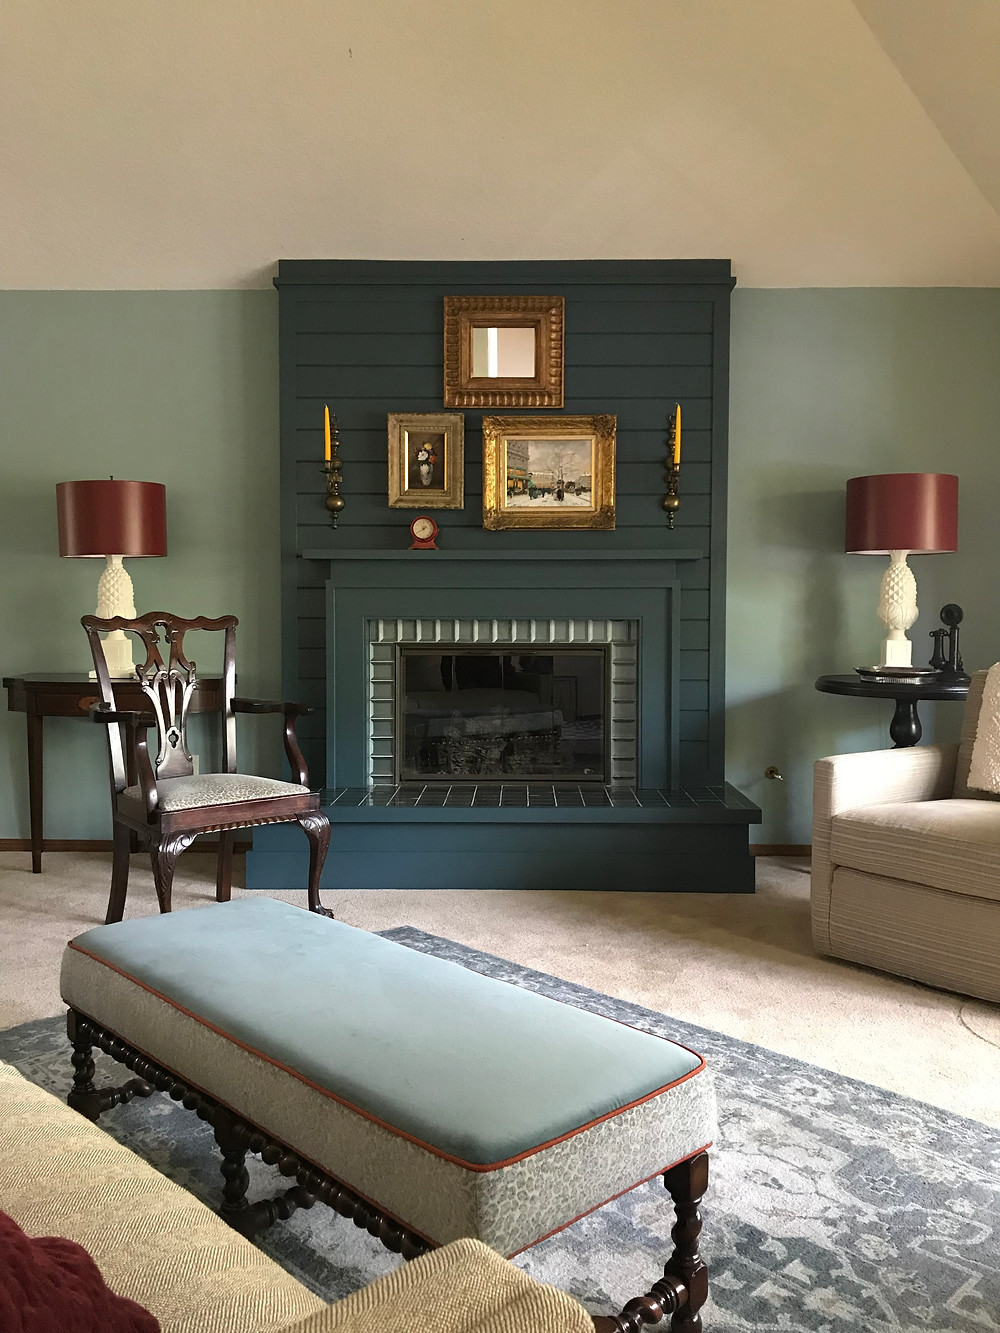 painted lamps, green fireplace, remodel, antiques, old and new living room, living room, green living room, HC-133, Yorktown Green, Ben Moore HC-133, reused, repurpose, pineapple lamps, remodel, new fireplace surround, classical architecture